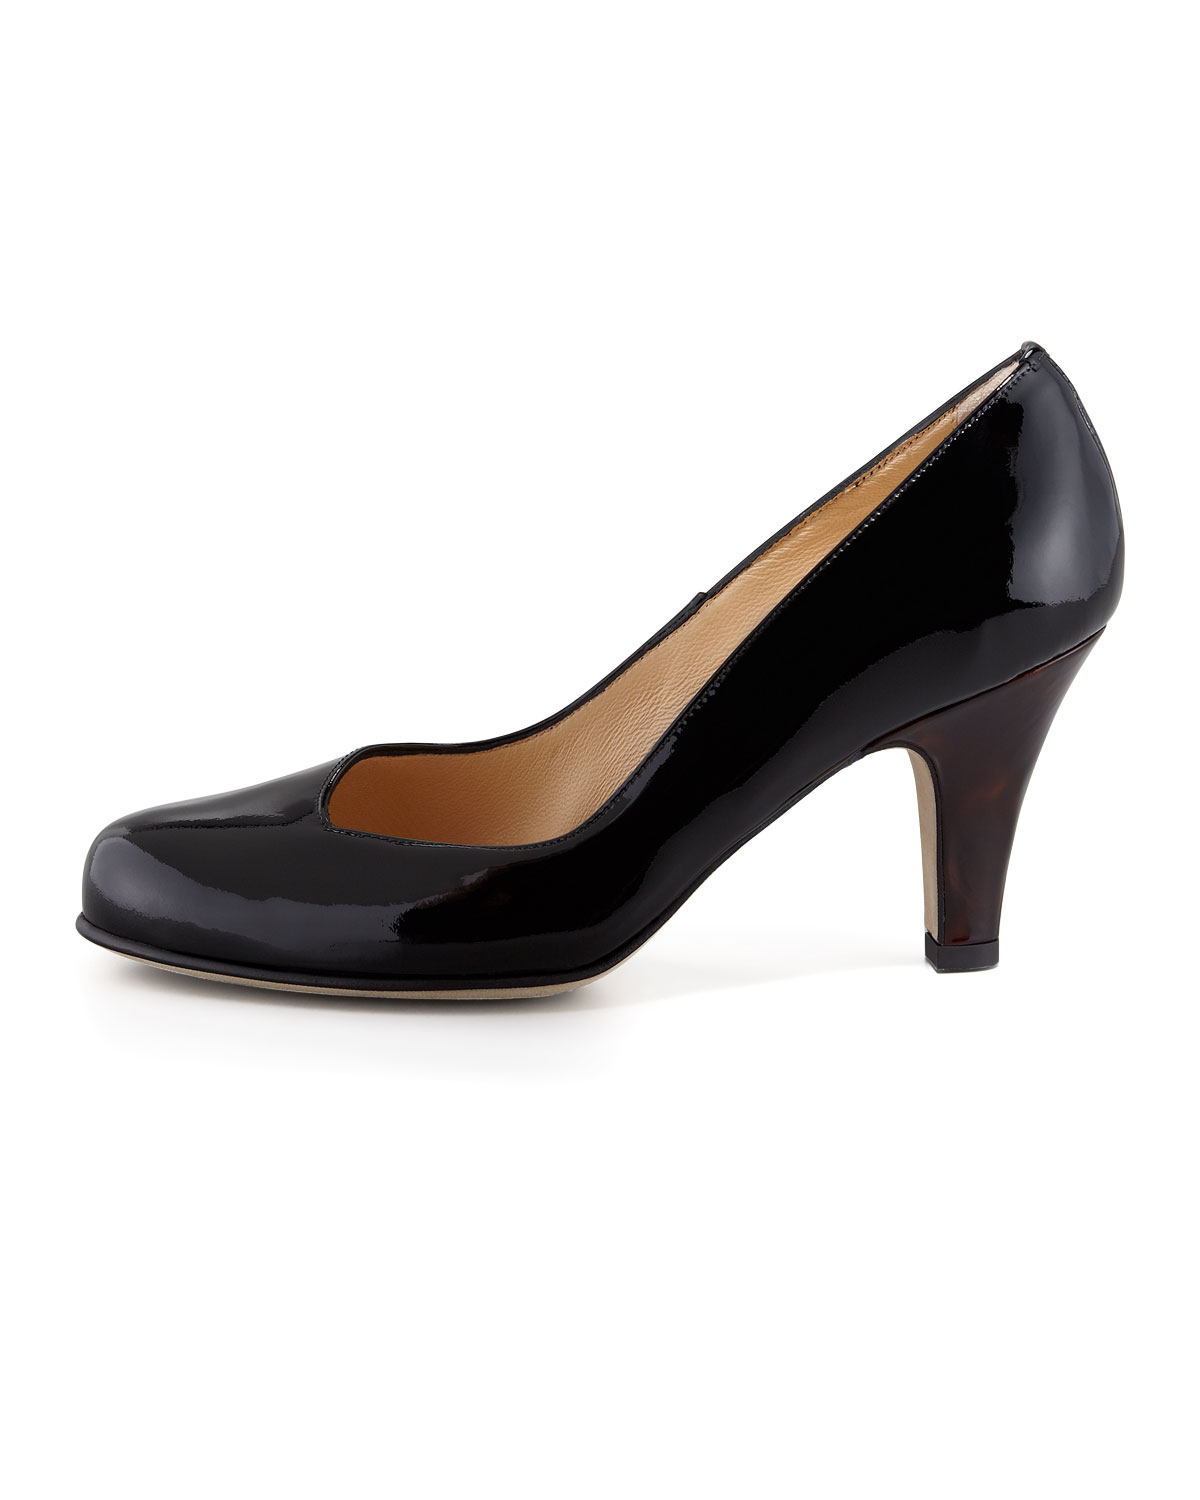 handmade black patent leather low heels pumps shoes 3 gallery